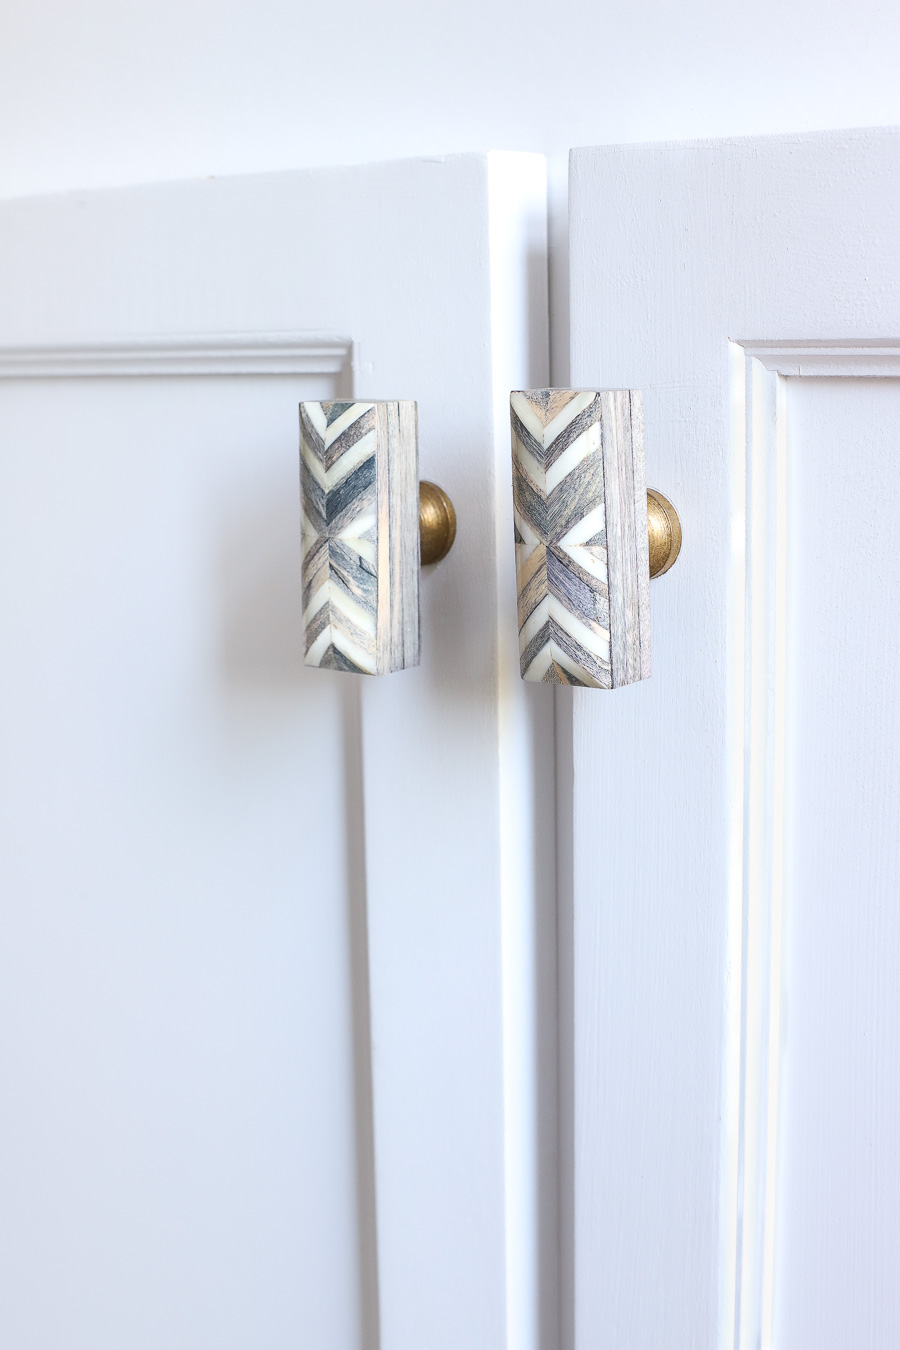 Gorgeous wood inlay cabinet knobs!